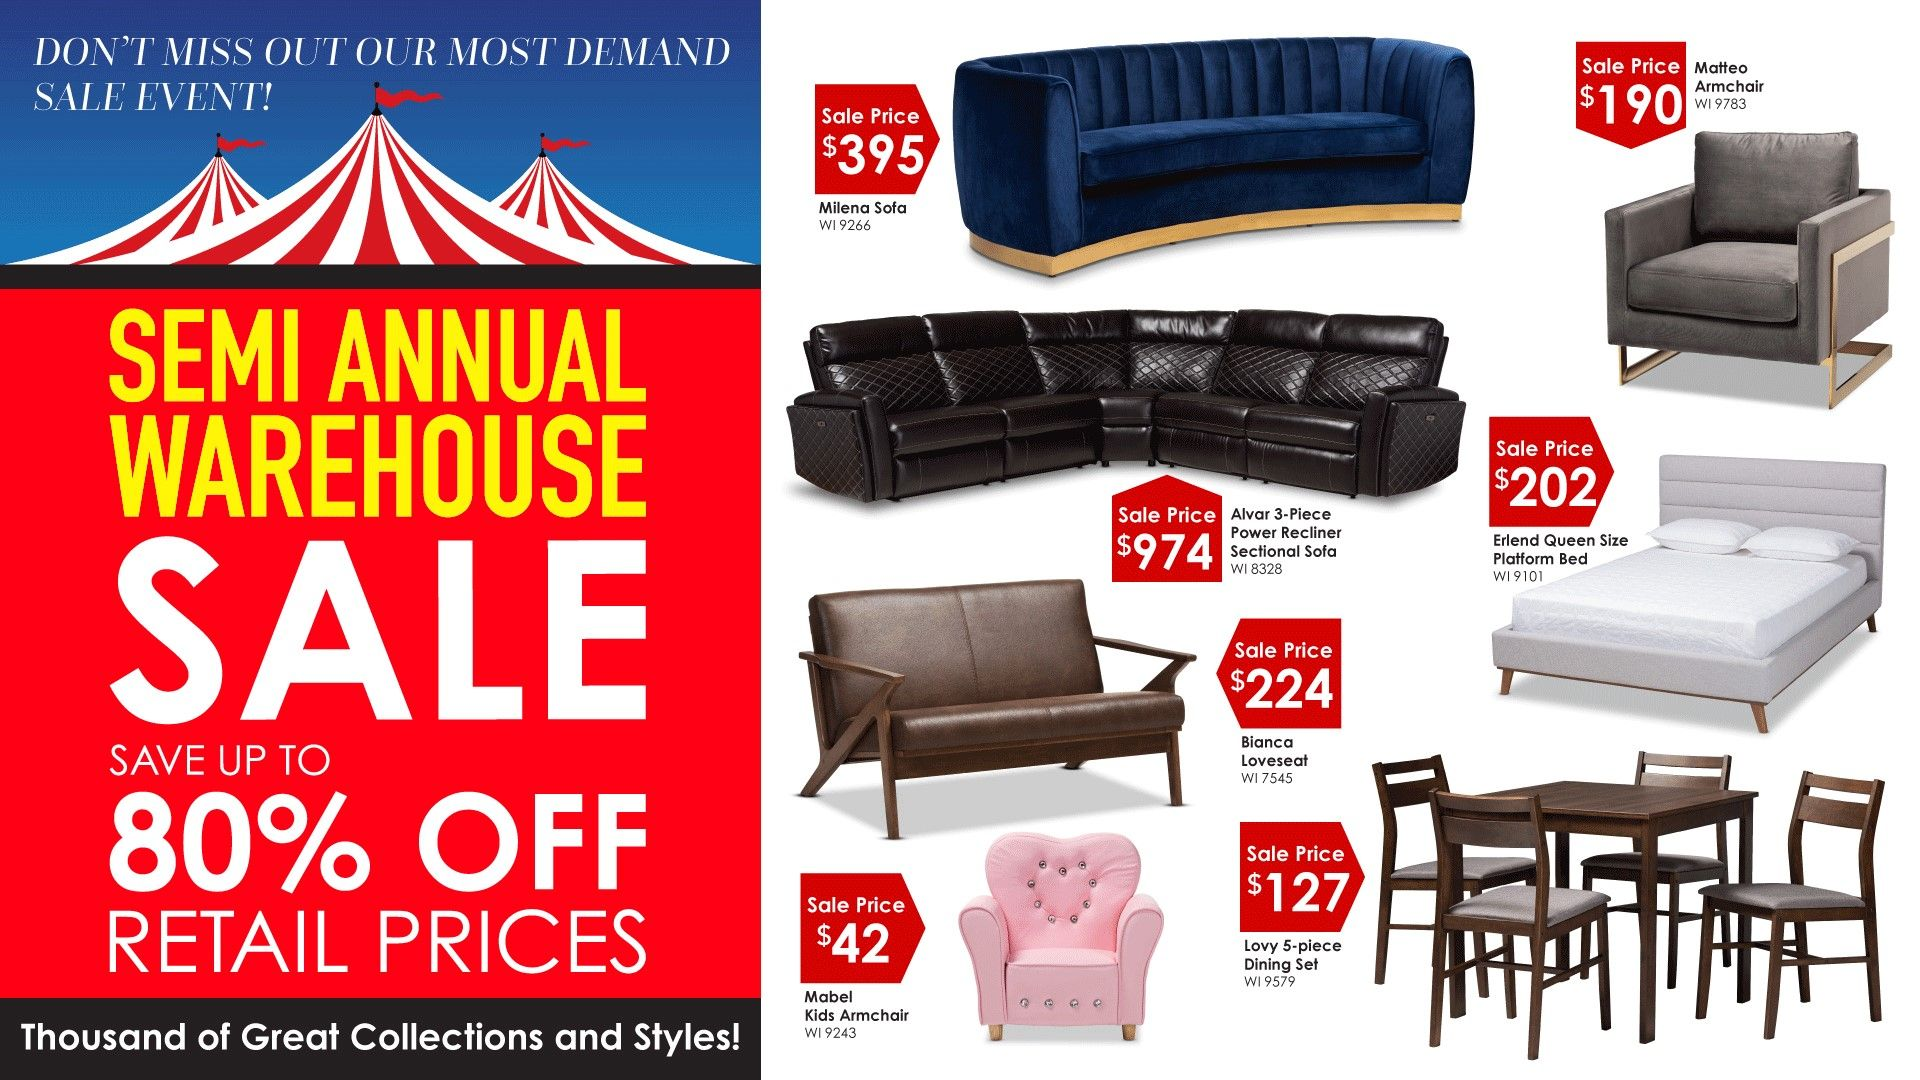 Semi Annual Warehouse Sale Warehouse Sales Chicago Furniture Mattress Store